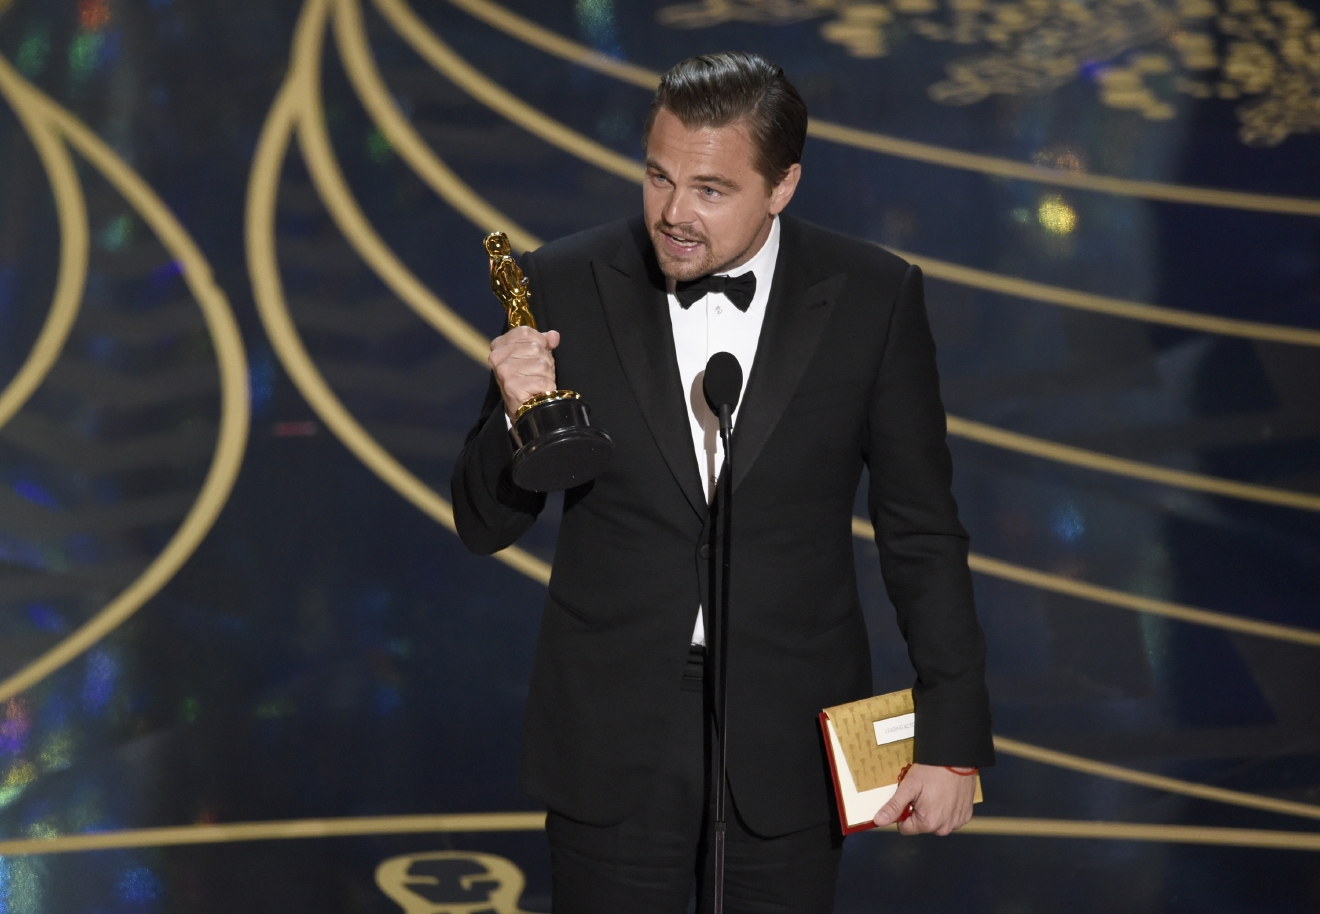 Leonardo DiCaprio accepts the award for best actor in a leading role for Â?The RevenantÂ? at the Oscars on Sunday, Feb. 28, 2016, at the Dolby Theatre in Los Angeles. (Photo by Chris Pizzello/Invision/AP)